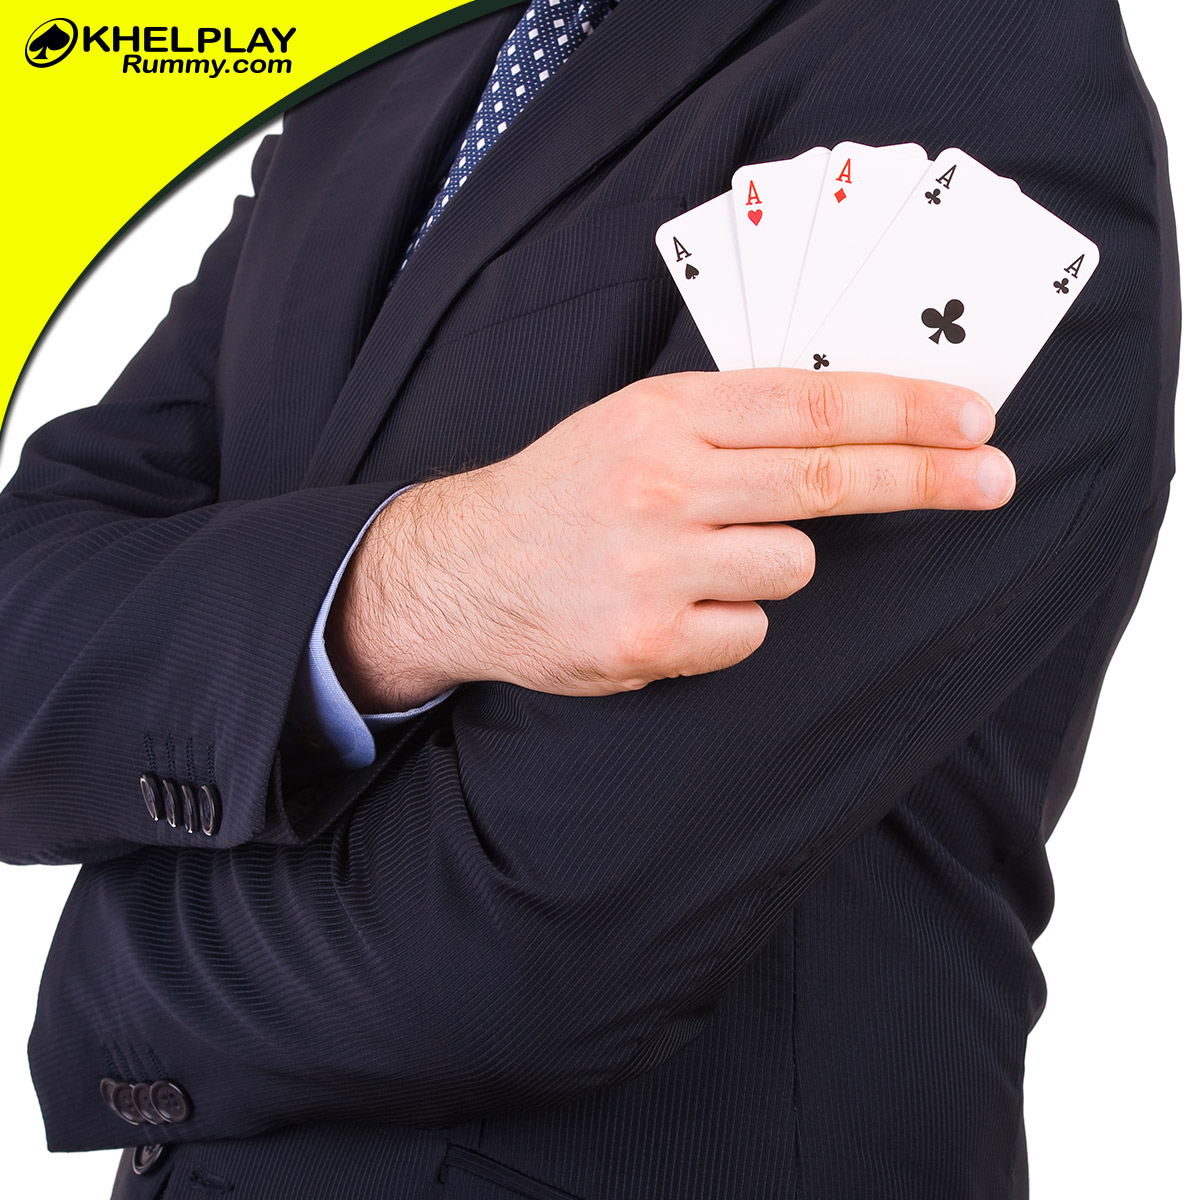 Khelplay Rummy is Redefining the Face of Gaming Industry